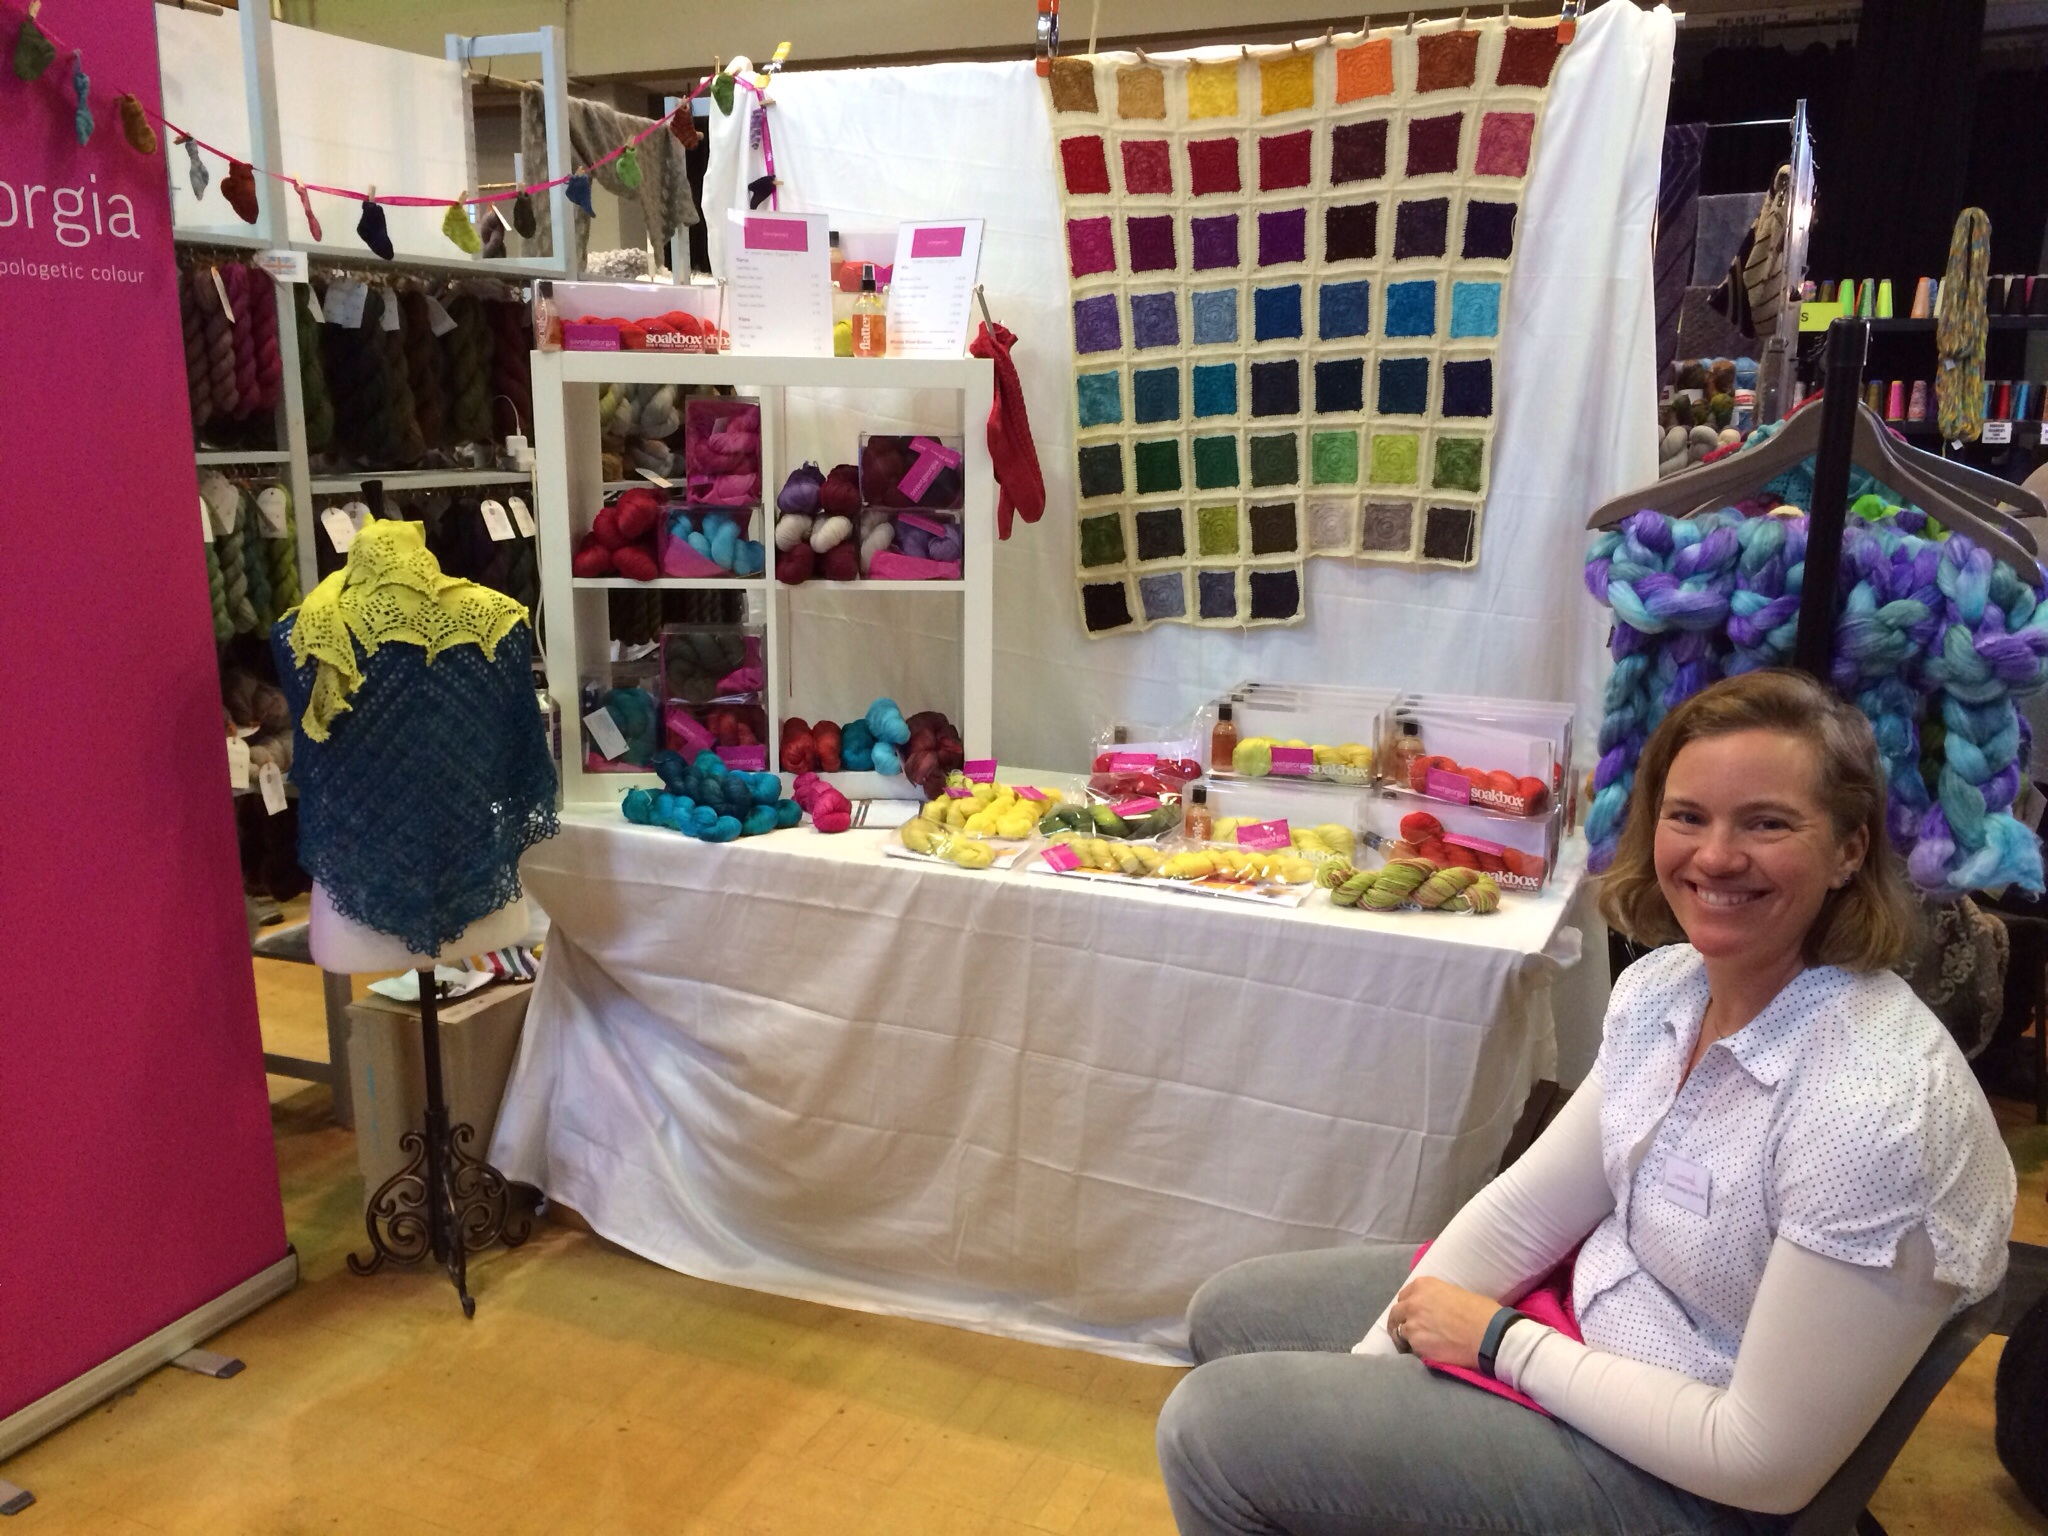 Rachel - aka the lovely Porpoise - helped me man the booth all weekend. And see, the blanket did get finished in the end!